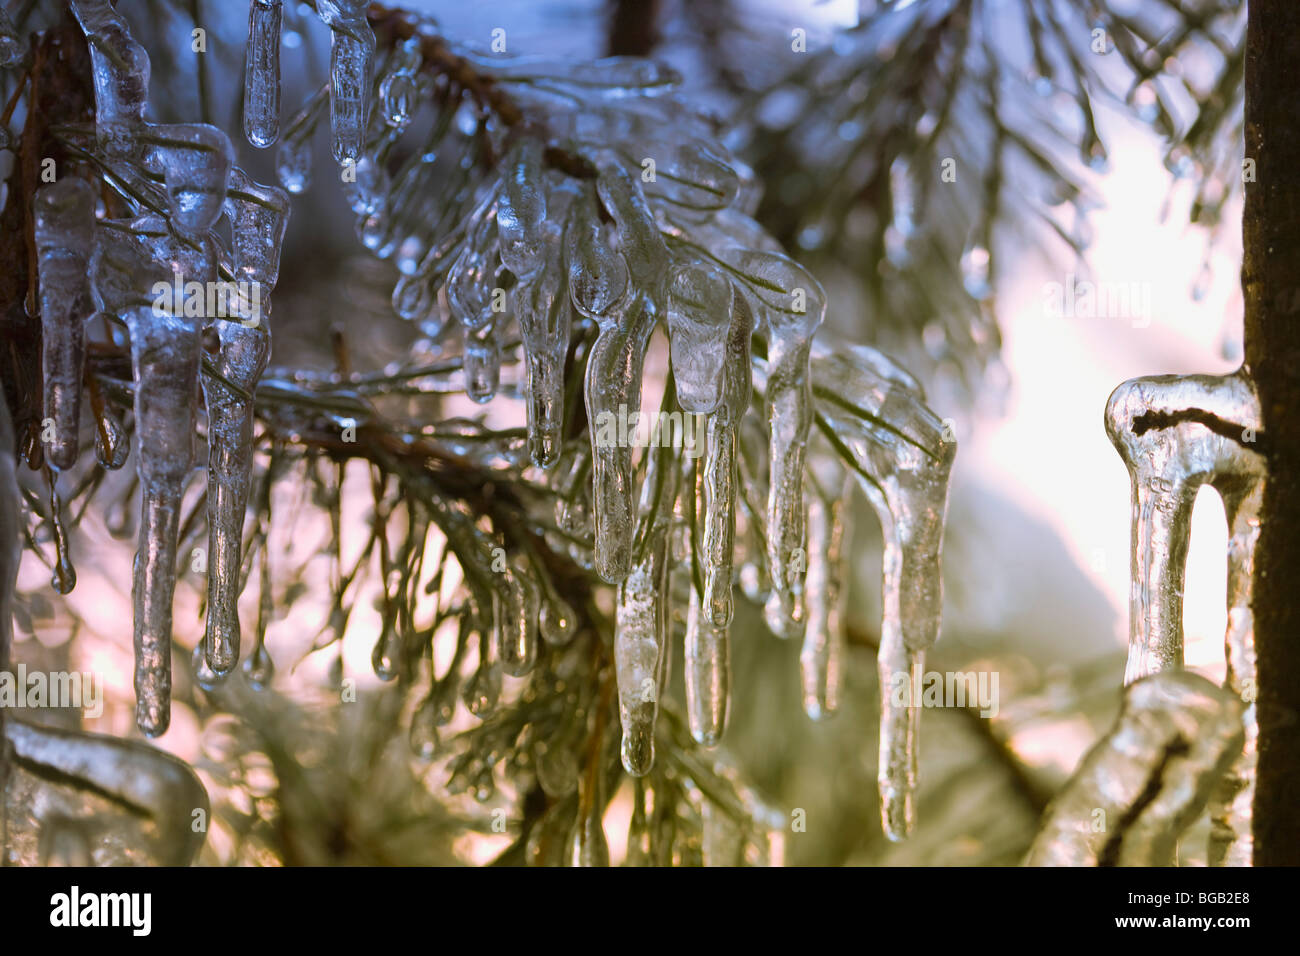 Icicles on a tree - Stock Image